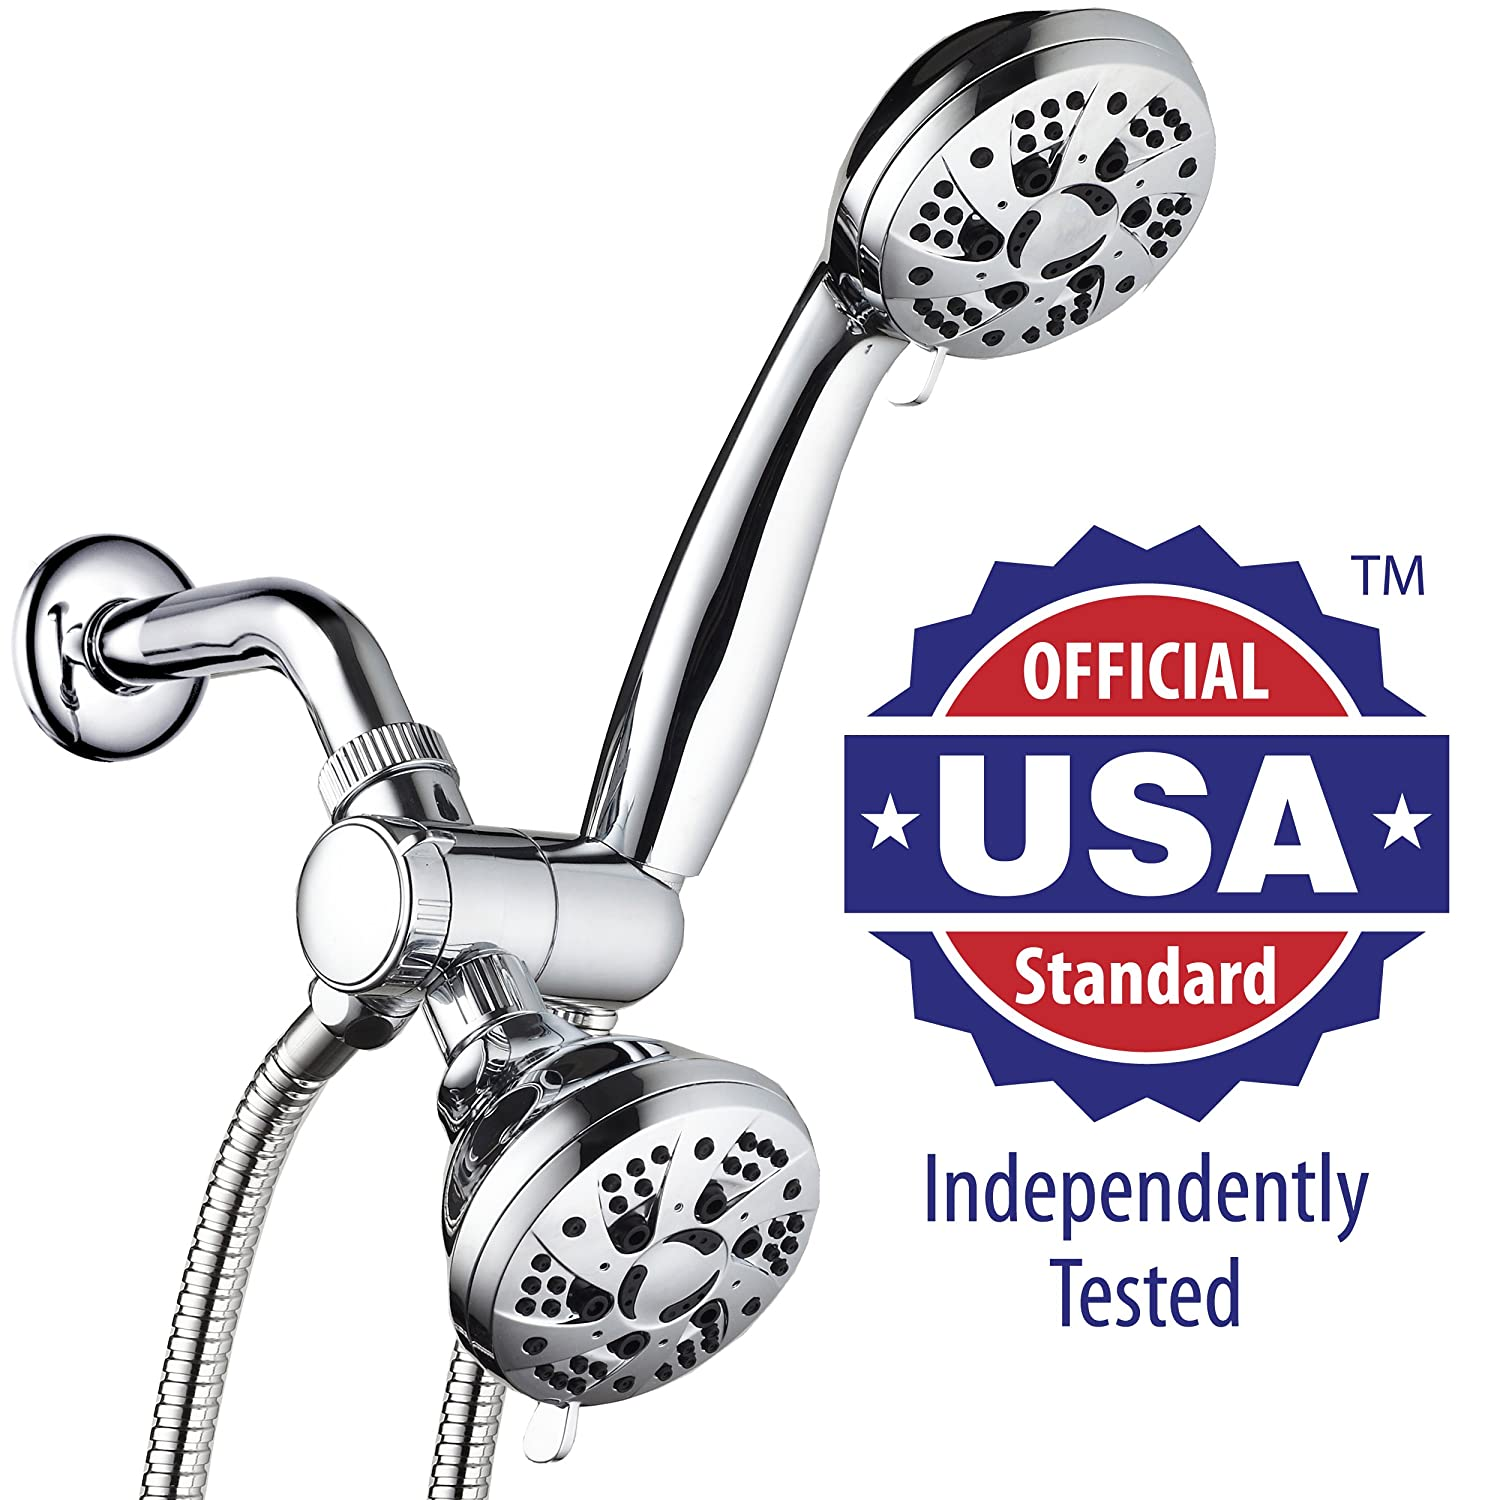 hot sale 2017 AquaDance High Pressure 3-way Twin Shower Combo Lets You Enjoy Two 6-Setting 3.5-Inch Showers Separately or Together! Officially Independently Tested to Meet Strict US Quality & Performance Standards